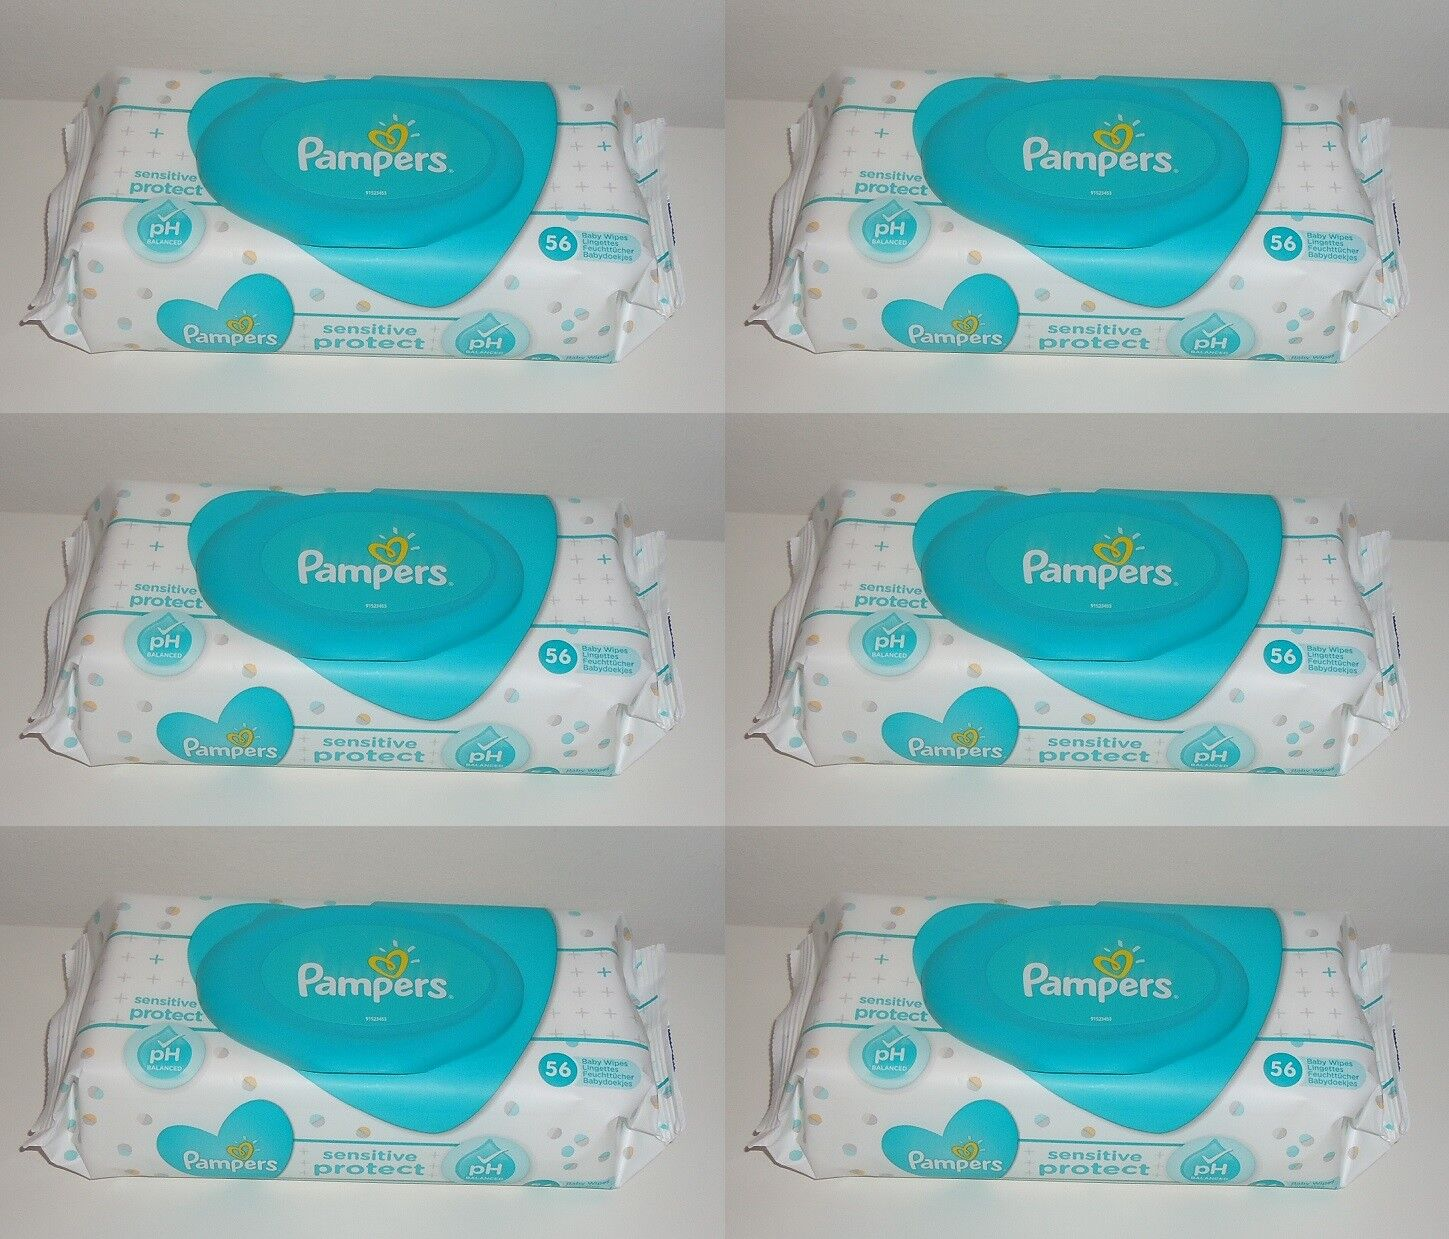 (0,07€ je Tuch) 6x Pampers sensitive protect 56er Feuchttücher